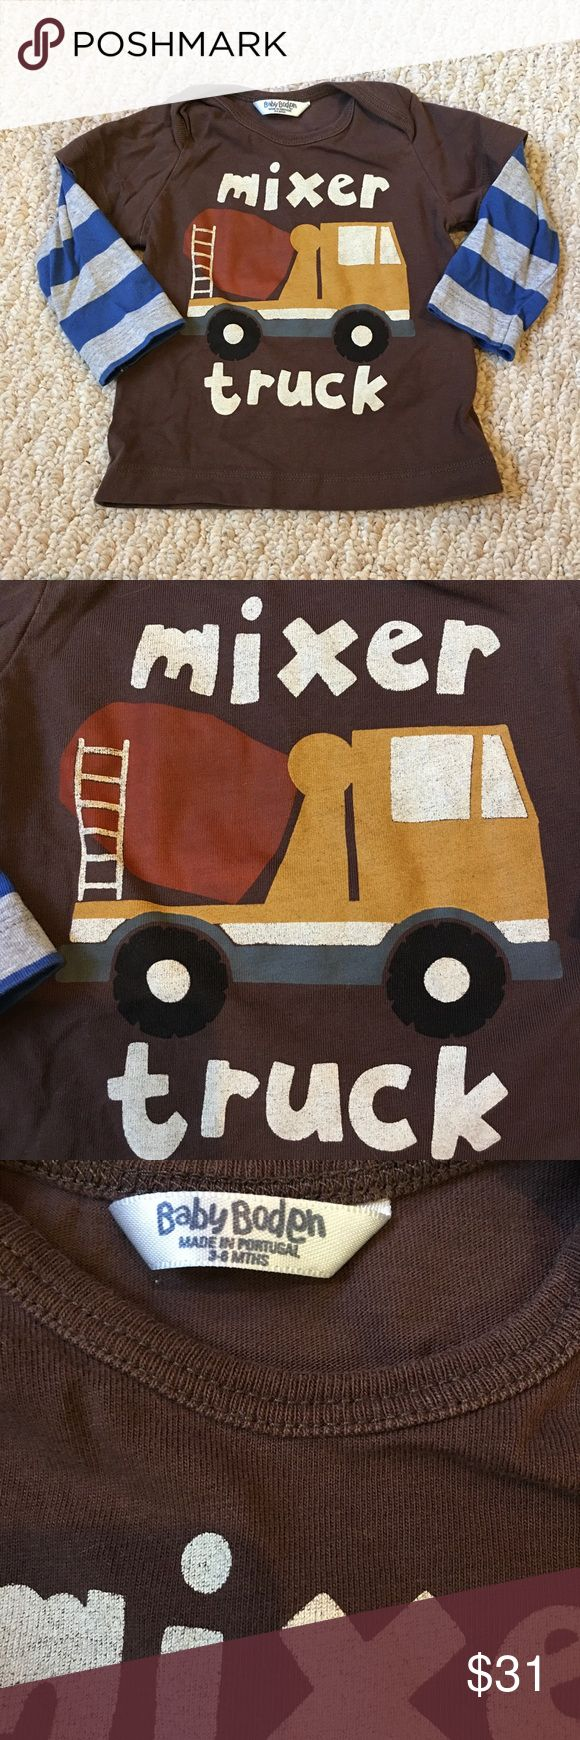 Boden mixer truck shirt Hard to find mixer truck shirt Mini Boden Shirts & Tops Tees - Long Sleeve